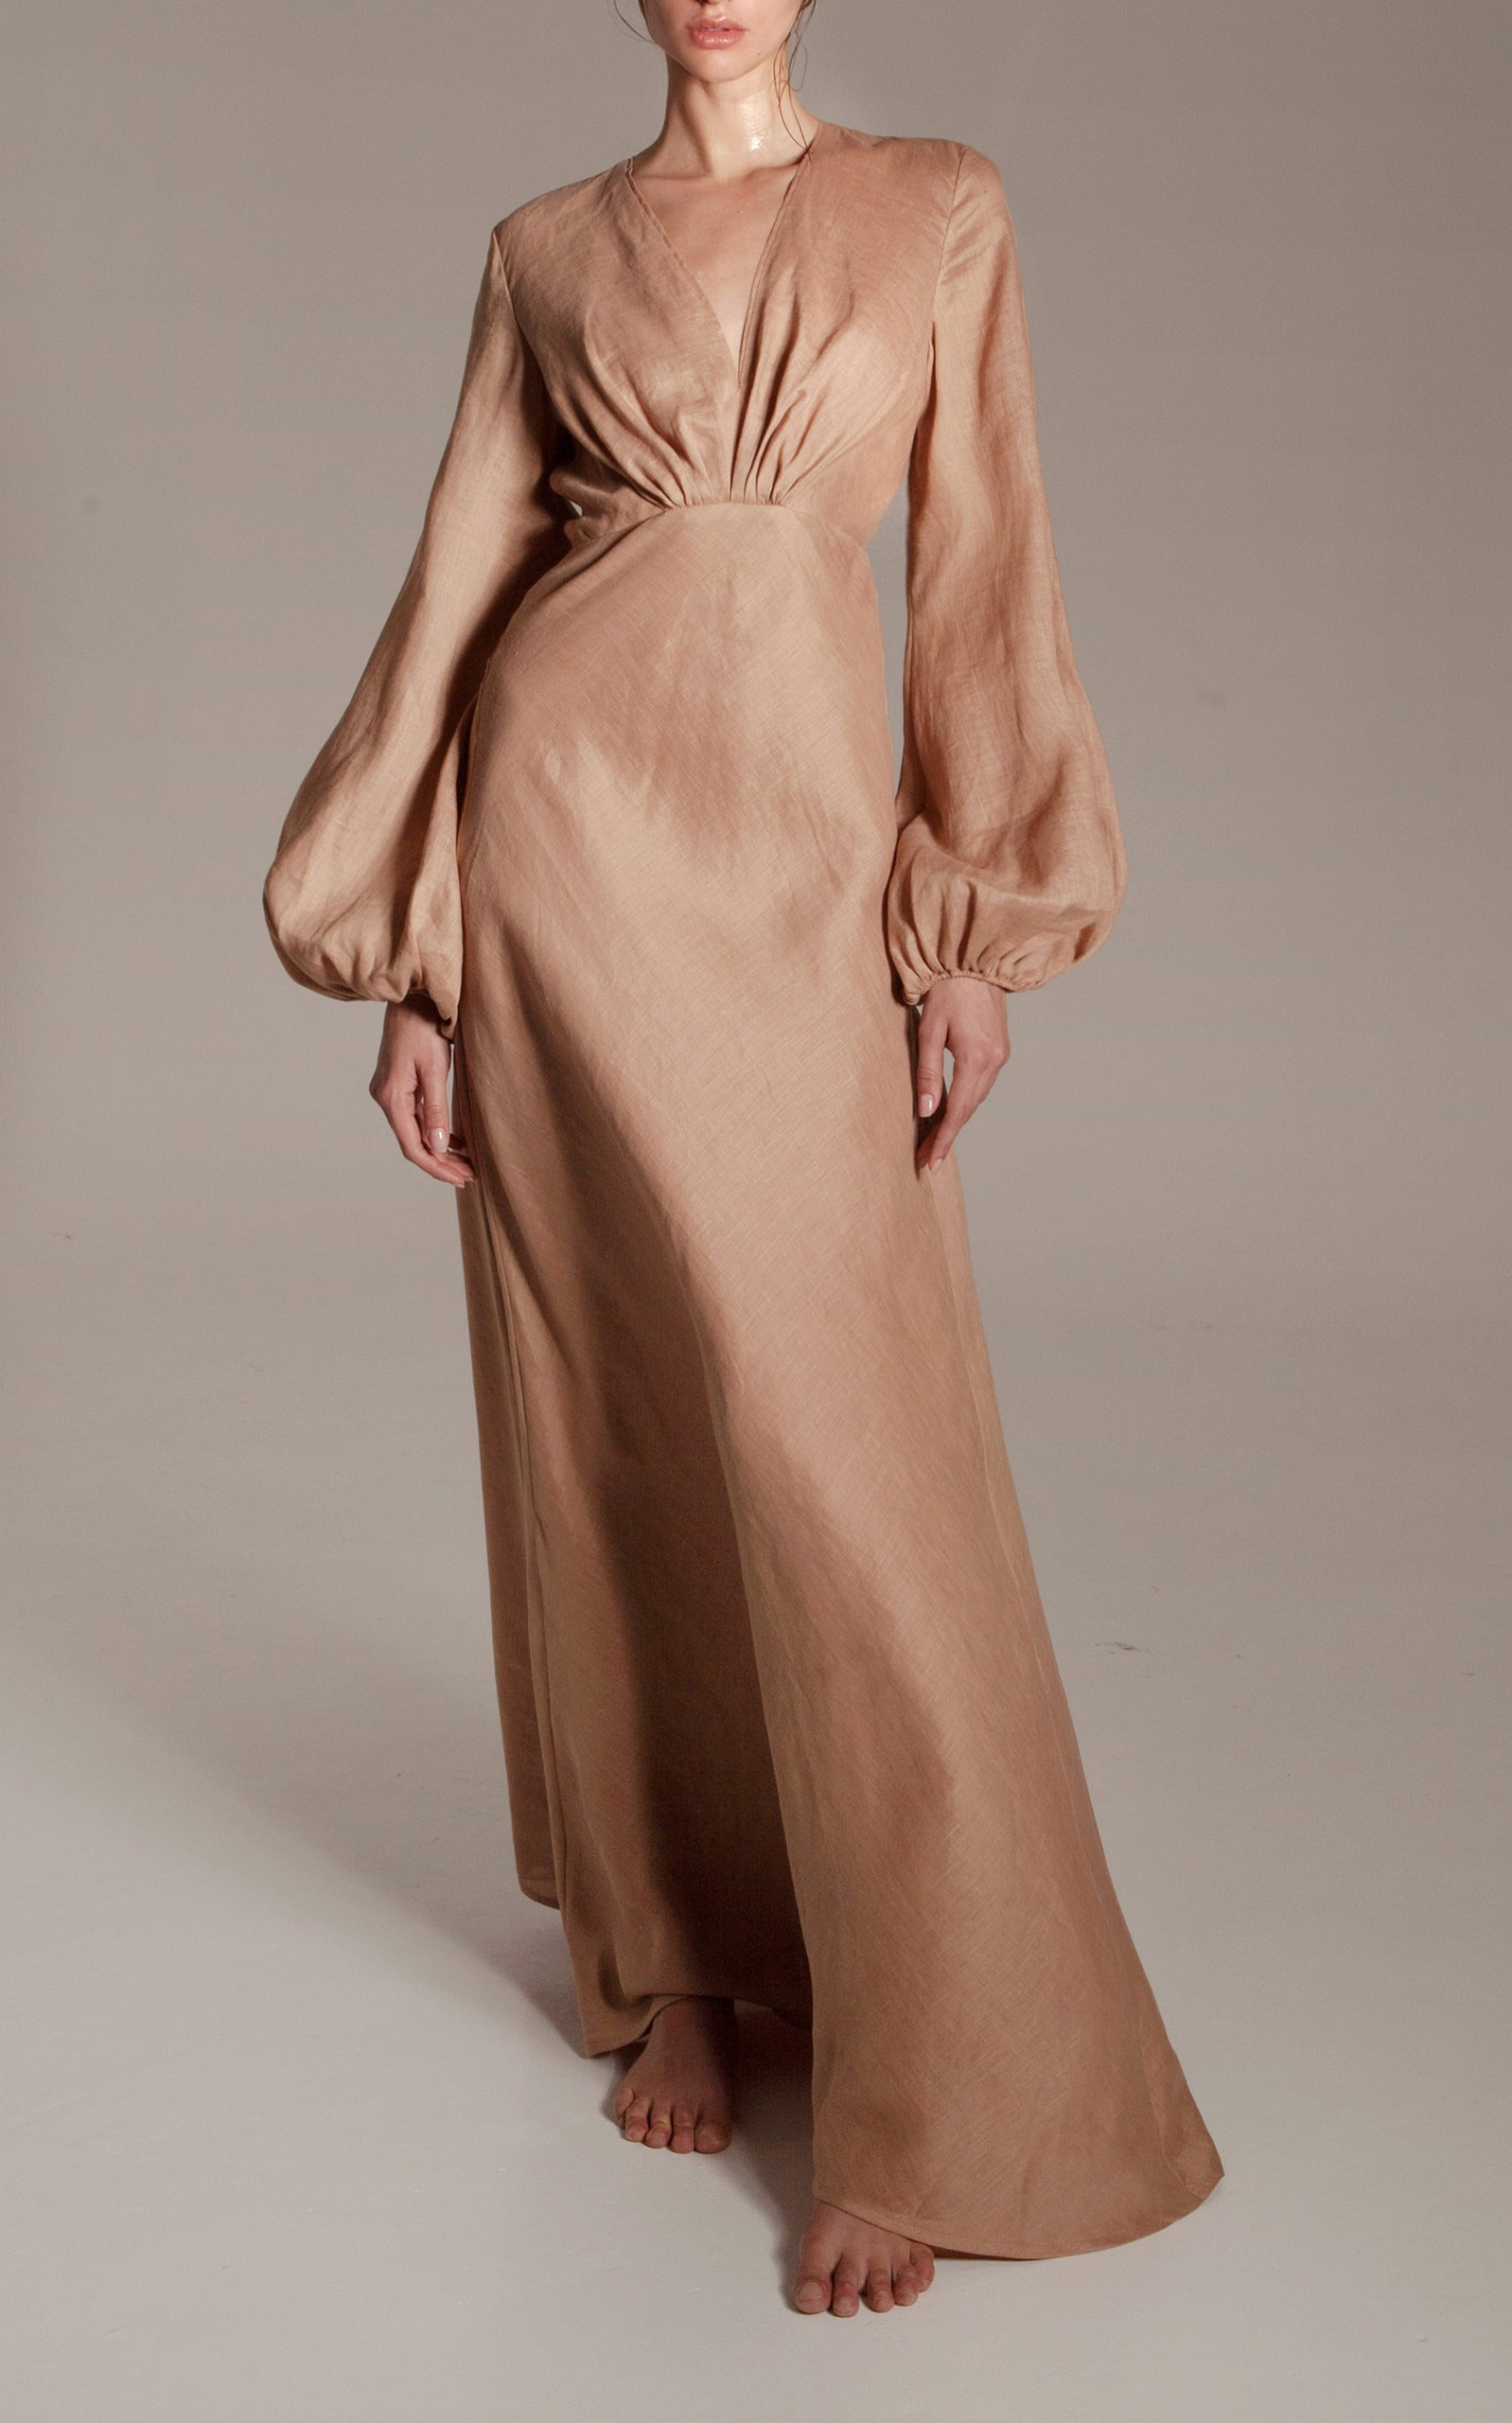 Kalita - Destination Wear - Brown Utopia Linen Gown